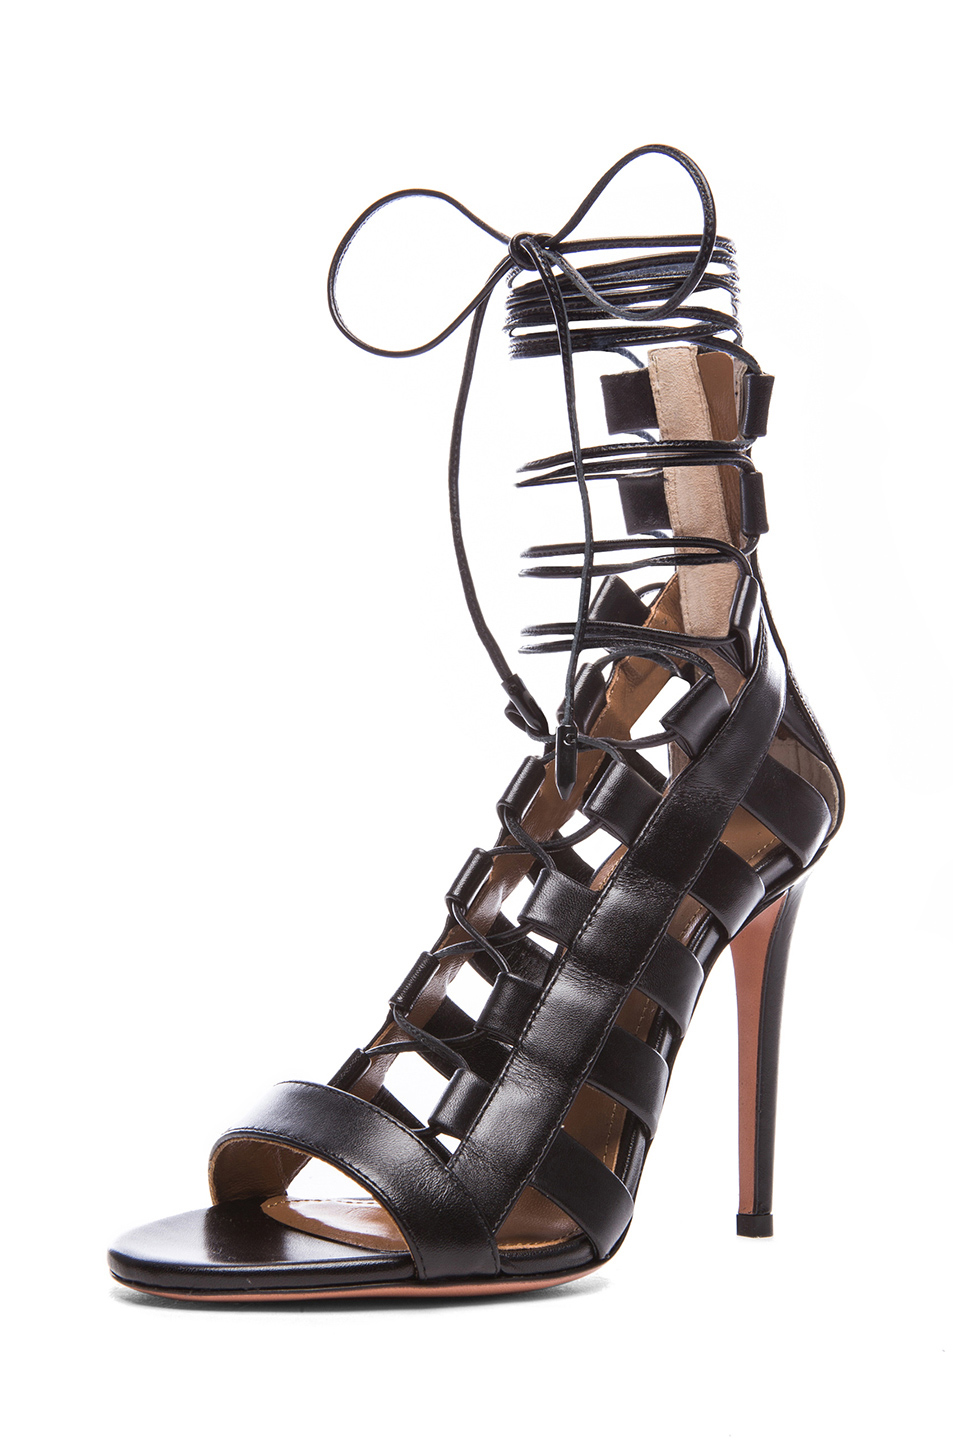 Aquazzura|Amazon Calfskin Leather Lace Up Sandals in Black